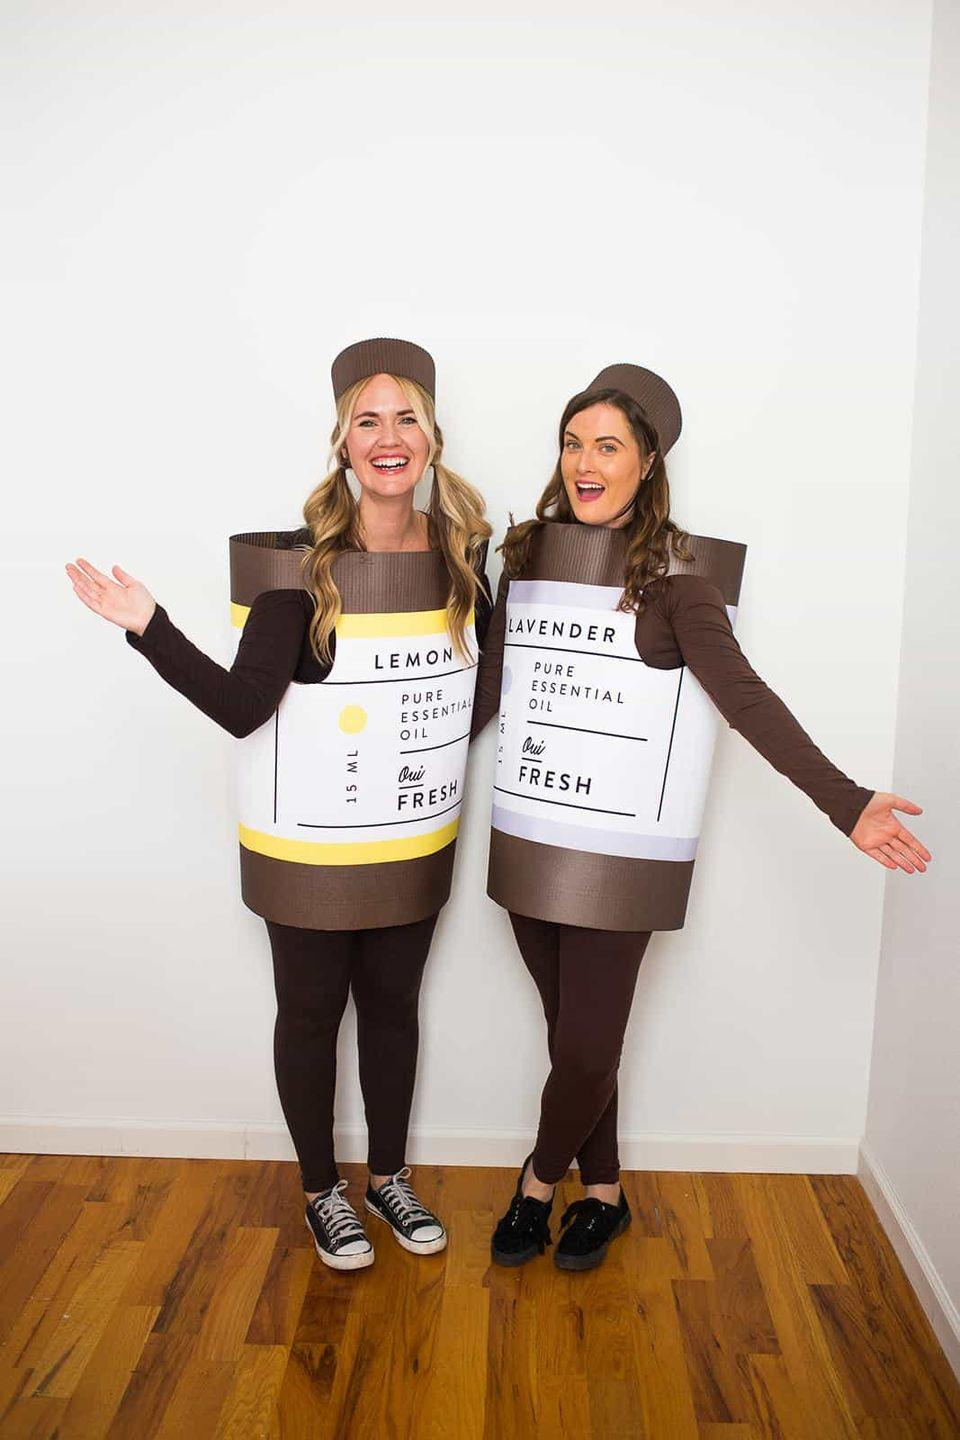 """<p>This refreshing idea can work for best friends or siblings. Feel free to customize the costume with your favorite essential oil scent. </p><p><strong>Get the tutorial at <a href=""""https://abeautifulmess.com/2018/10/essential-oil-halloween-costume.html"""" rel=""""nofollow noopener"""" target=""""_blank"""" data-ylk=""""slk:A Beautiful Mess"""" class=""""link rapid-noclick-resp"""">A Beautiful Mess</a>.</strong></p><p><strong><a class=""""link rapid-noclick-resp"""" href=""""https://www.amazon.com/gp/product/B07772C7B2?tag=syn-yahoo-20&ascsubtag=%5Bartid%7C10050.g.22118522%5Bsrc%7Cyahoo-us"""" rel=""""nofollow noopener"""" target=""""_blank"""" data-ylk=""""slk:SHOP CARDBOARD"""">SHOP CARDBOARD</a><br></strong></p>"""